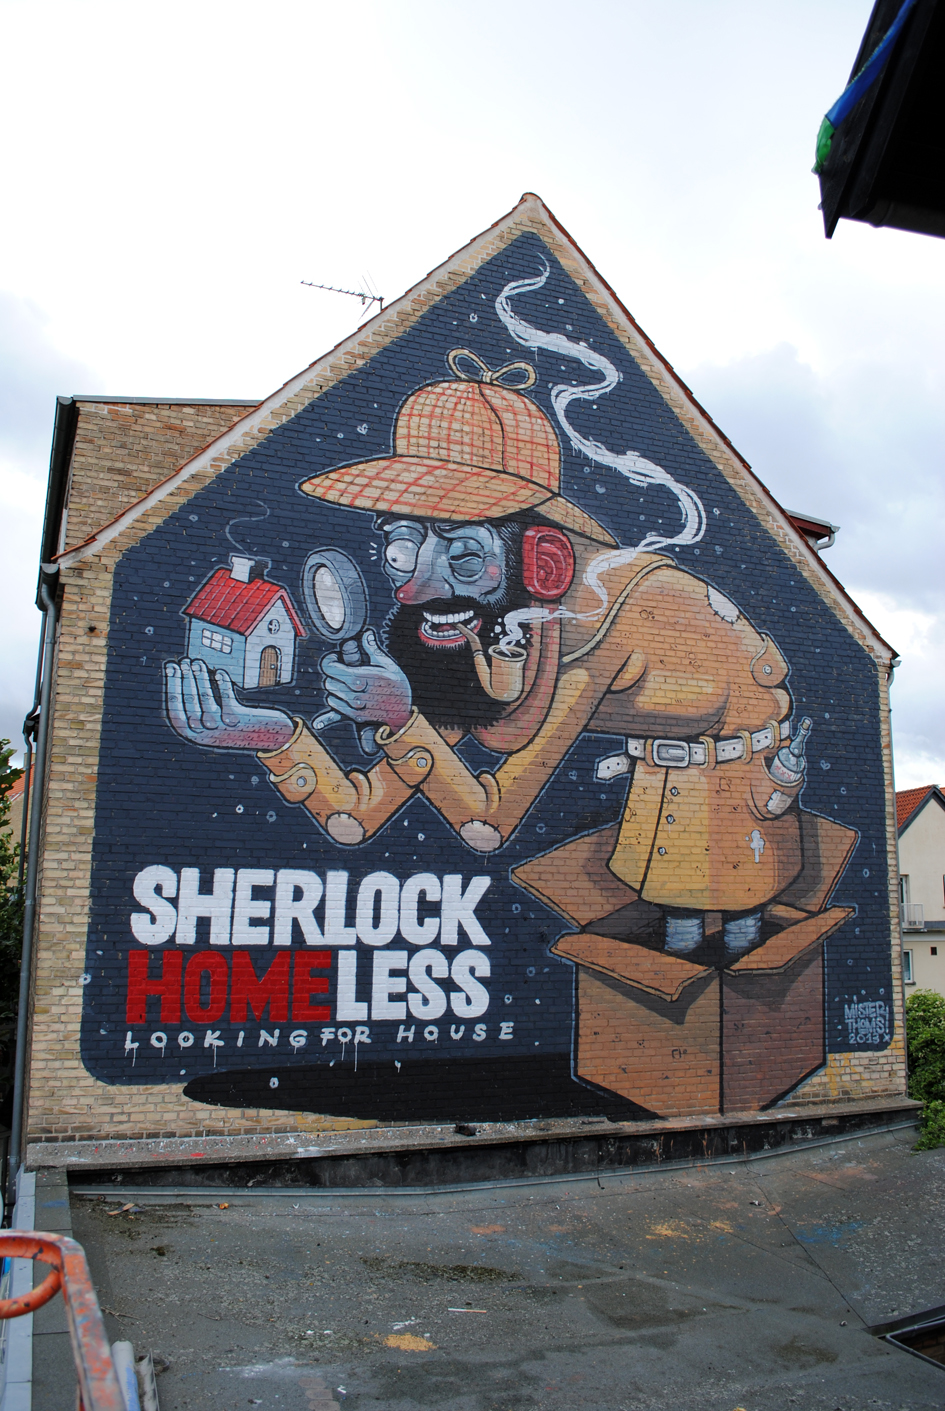 Sherlock Homeless by Mr Thoms